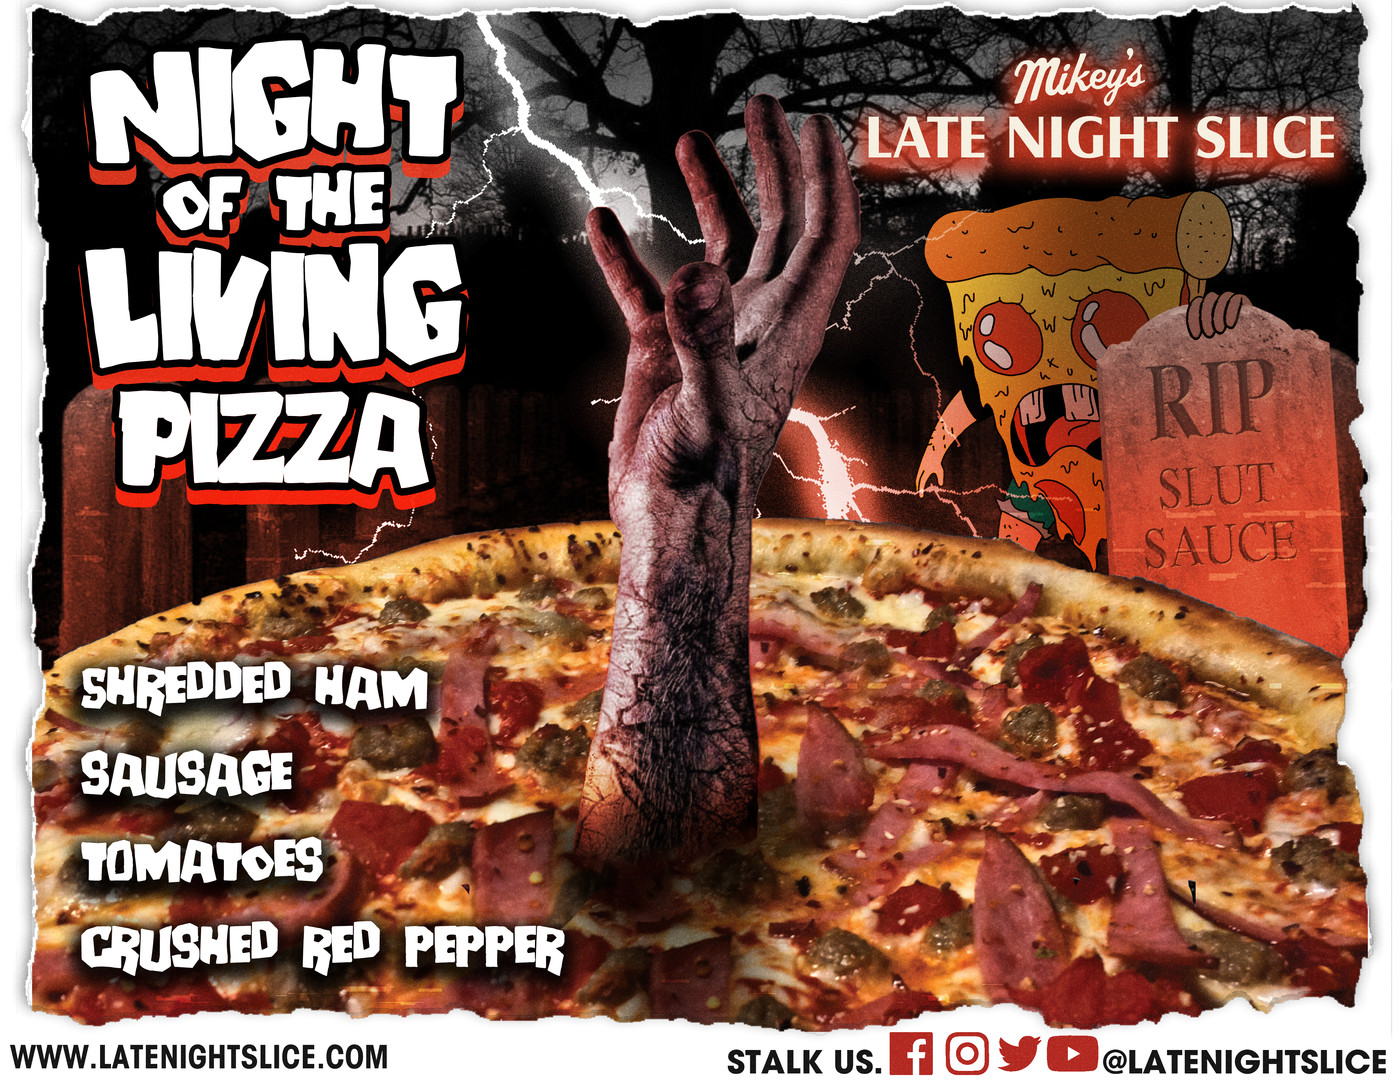 NightoftheLivingPizza.jpg